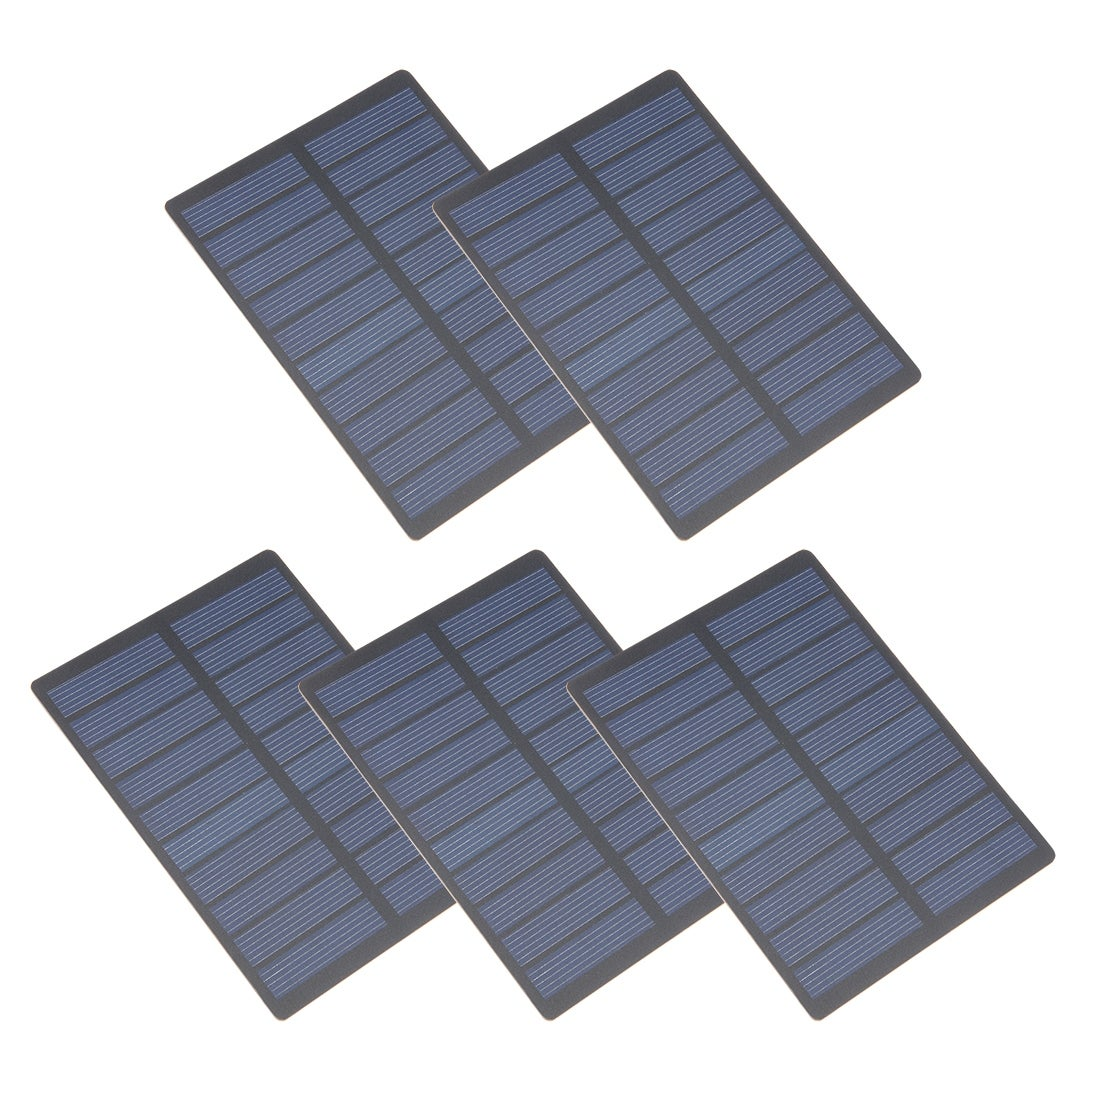 5Pcs 1.3W 5V Micro Solar Panel Module DIY Polysilicon for Phone Toys Charger